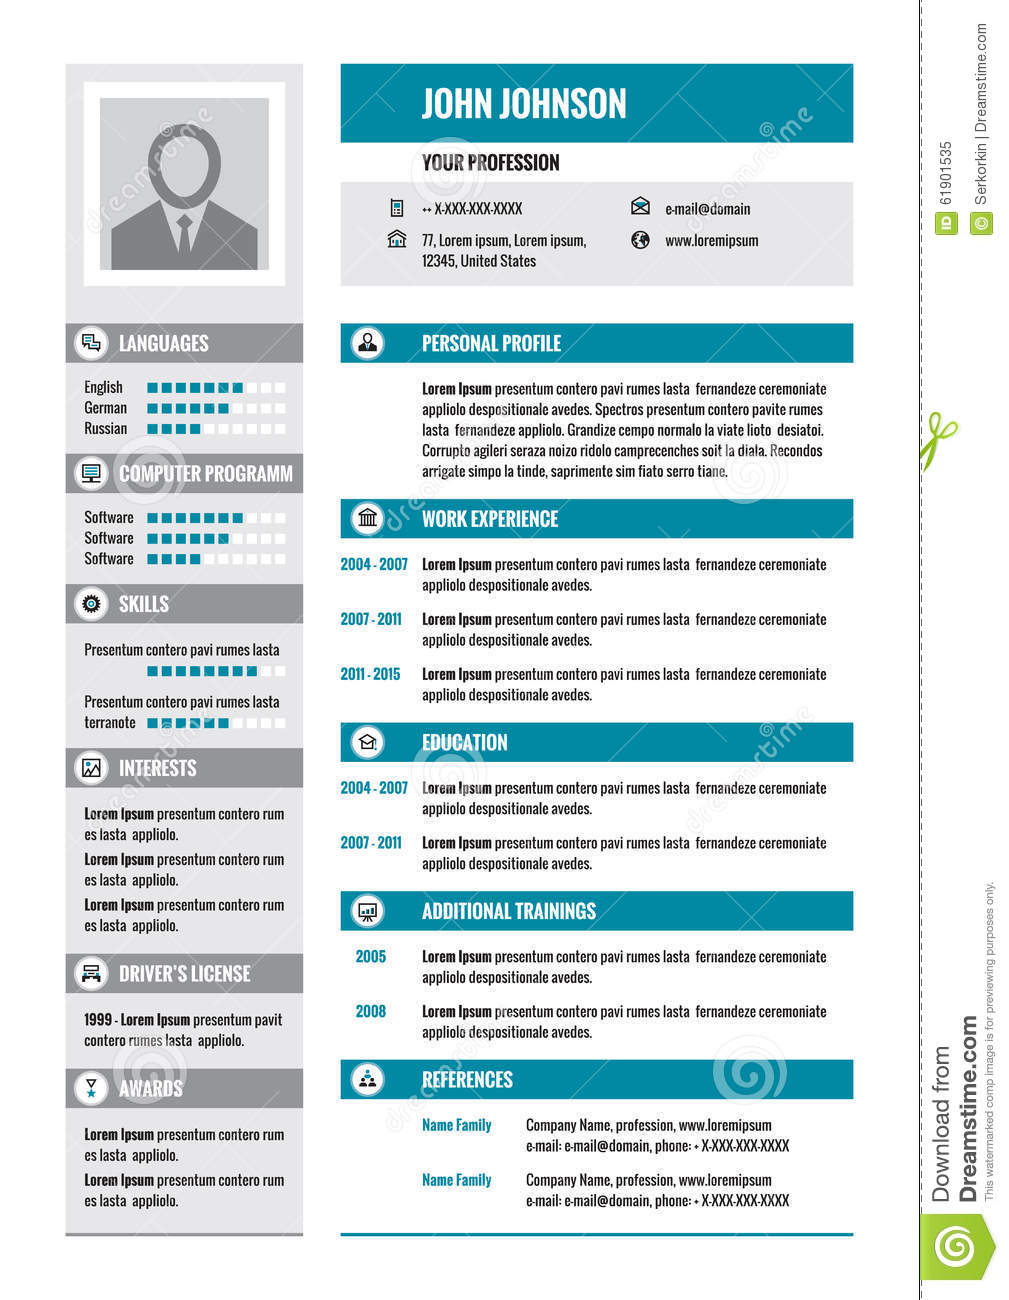 Curriculum Vitae vs Resume  corporatefinanceinstitutecom